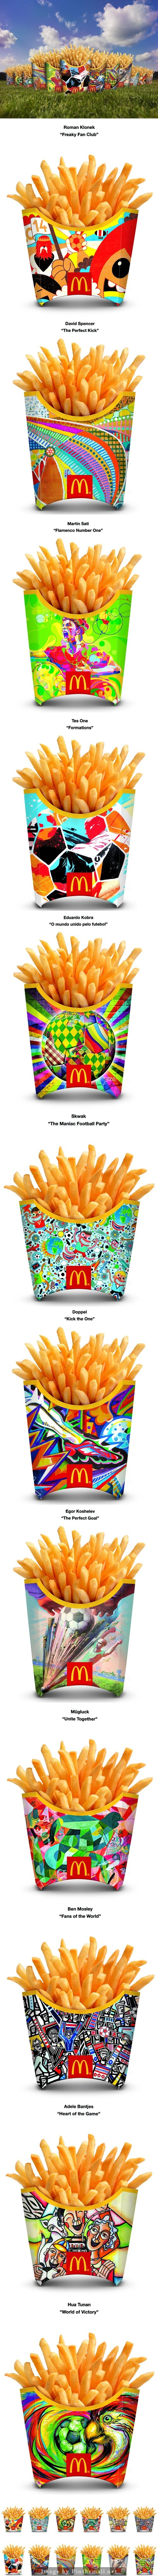 McDonald\'s Kick-Off FIFA World Cup™ With First-Ever Global French Fry Packaging Redesign ================  The artists showcased on the specially-designed fry boxes include:  Australia: David Spencer, Artwork Title - 'The Perfect Kick'  Brazil: Eduardo Kobra, Artwork Title - 'O mundo unido pelo futebol' (translation: 'The world united by football') Canada: Mügluck, Artwork Title - 'Unite Together'  China: Hua Tunan, Artwork Title - 'World of Victory' England: Ben Mosley, Artwork ...